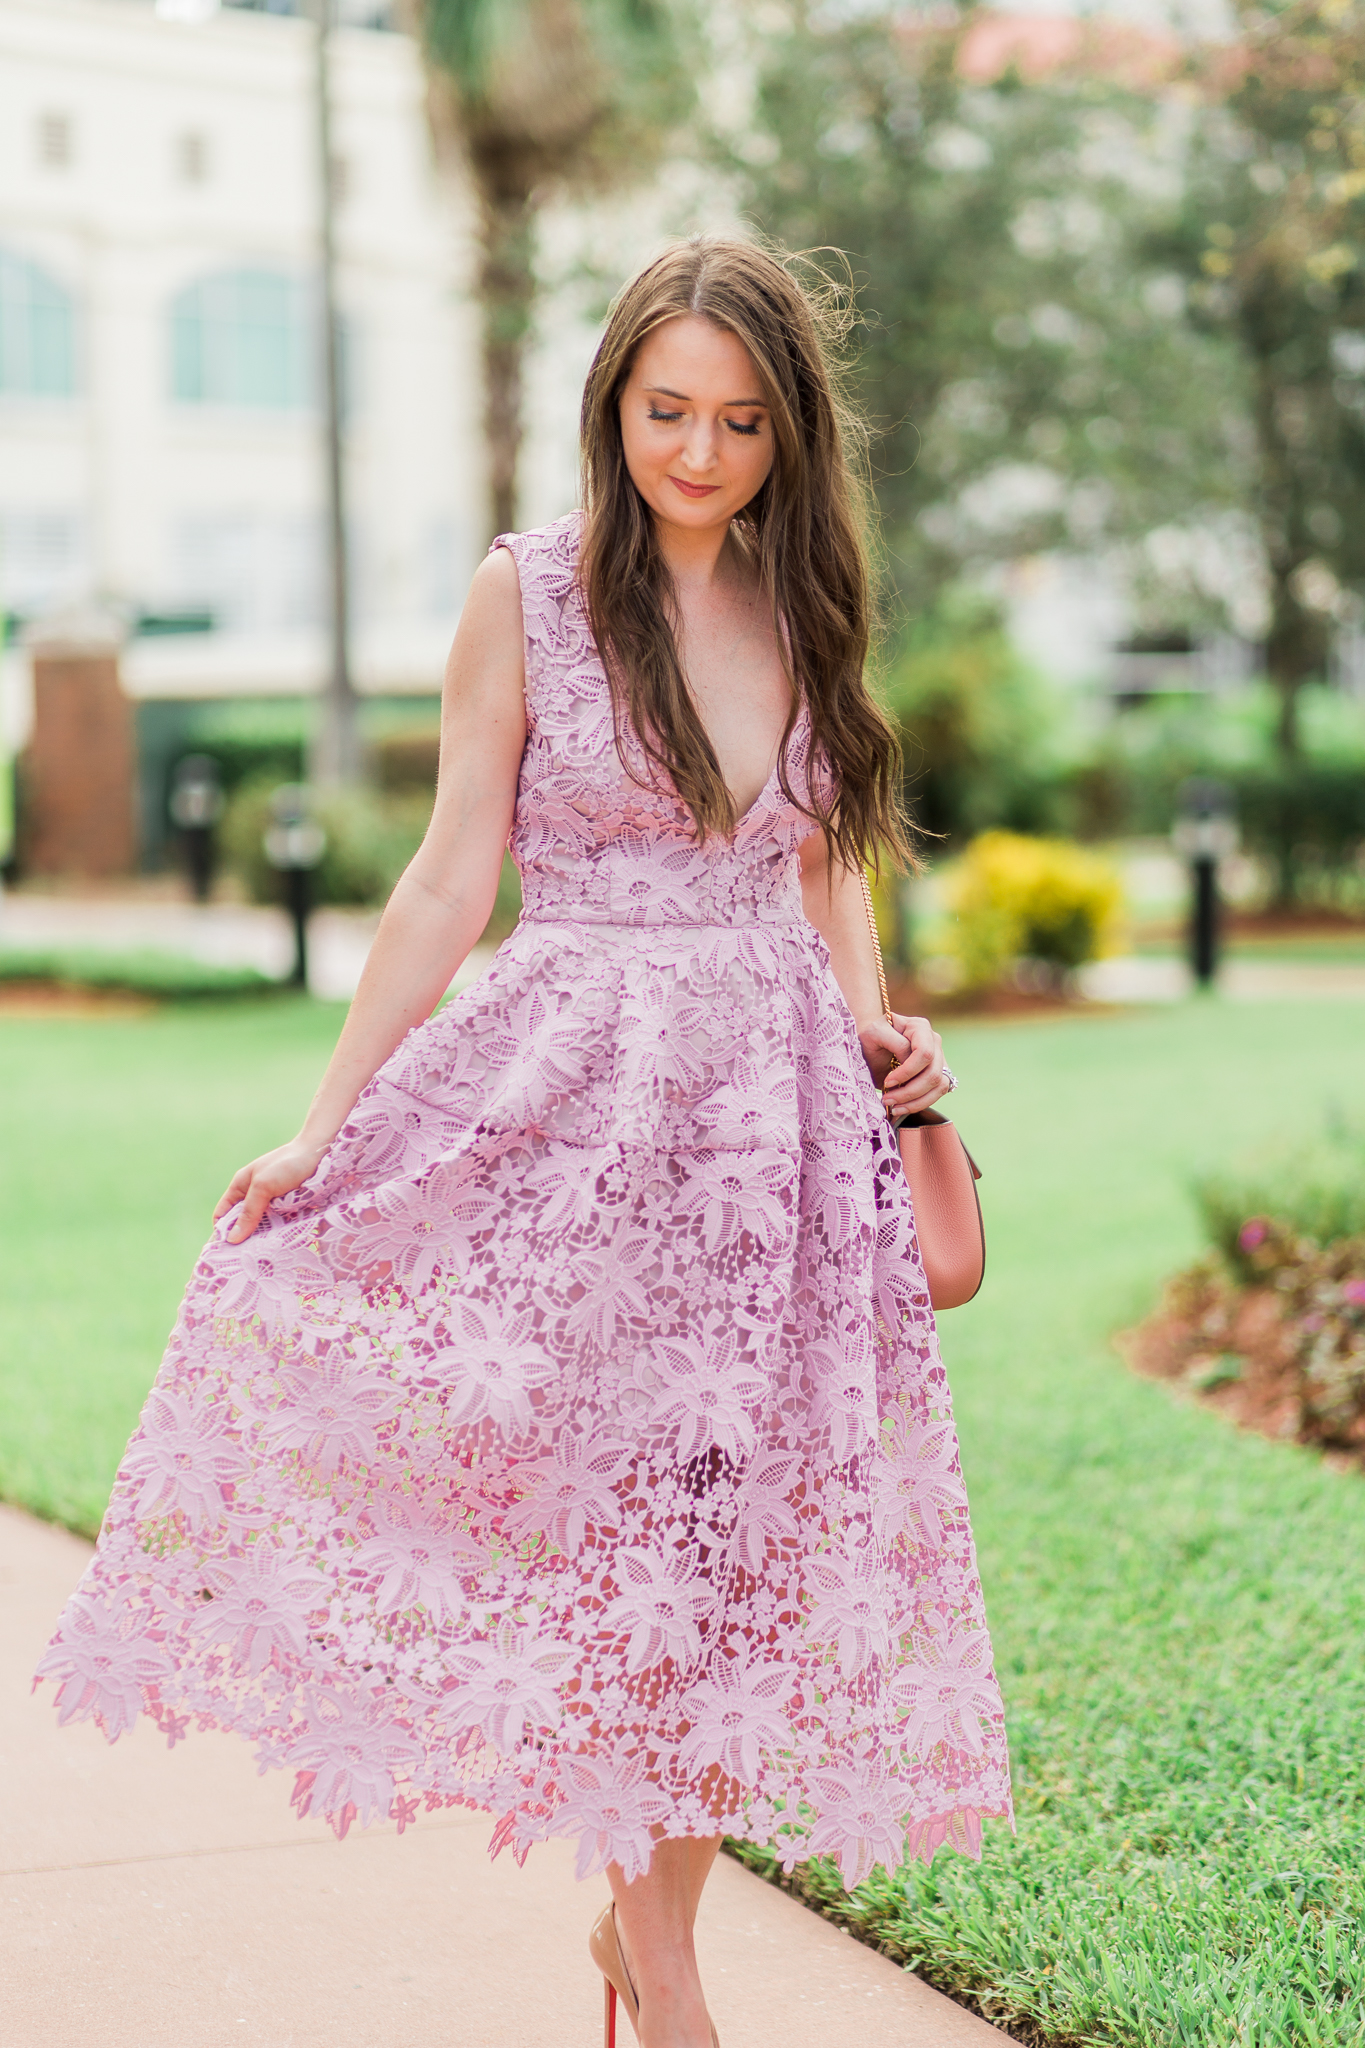 A pink lace dress & why I would rather be overdressed| Nicholas bellflower dress, christian louboutin pigalle, pigalle plato, Chloe drew, pink lace dress, lace dress, pink dress, pink and red outfit, fashion inspiration, christinabtv, fashion blogger, lace dress